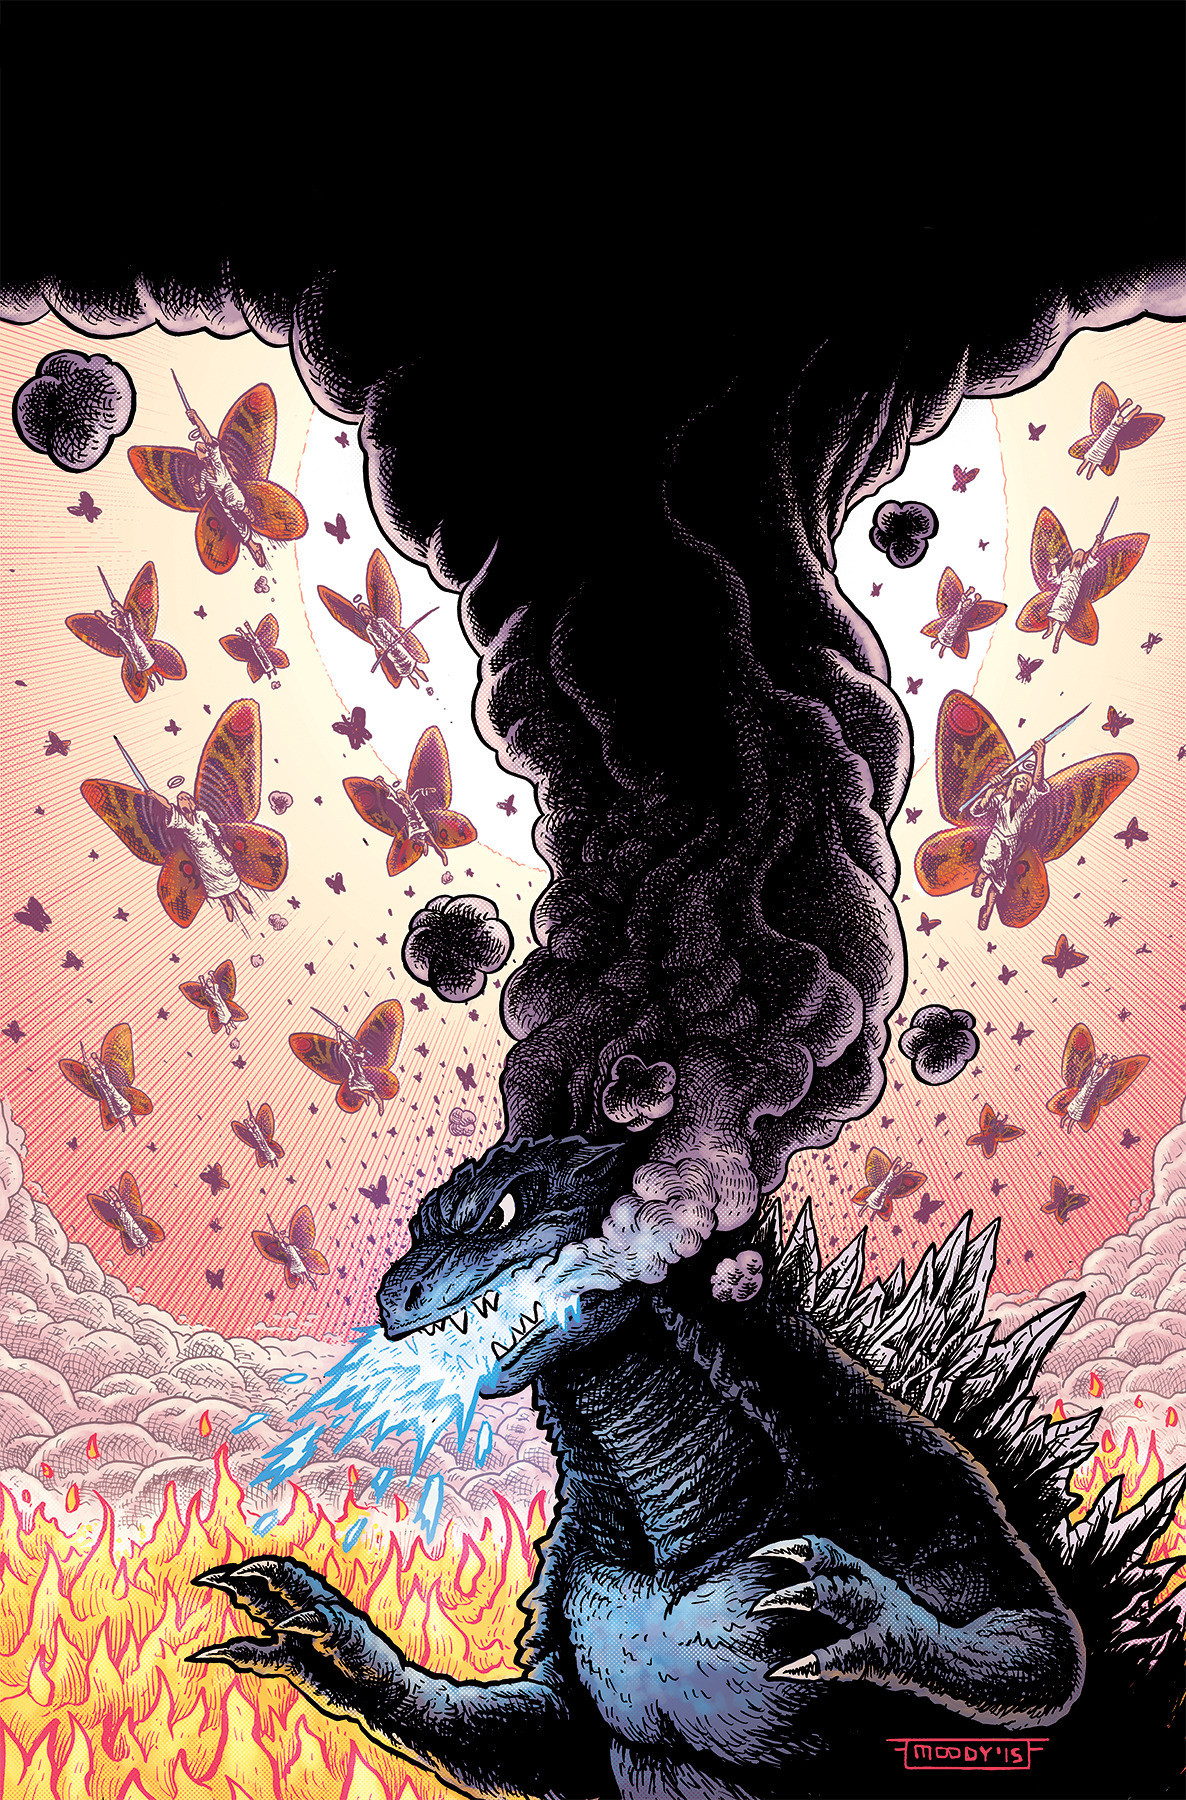 Godzilla in Hell #3 cover art, no cover dressing.